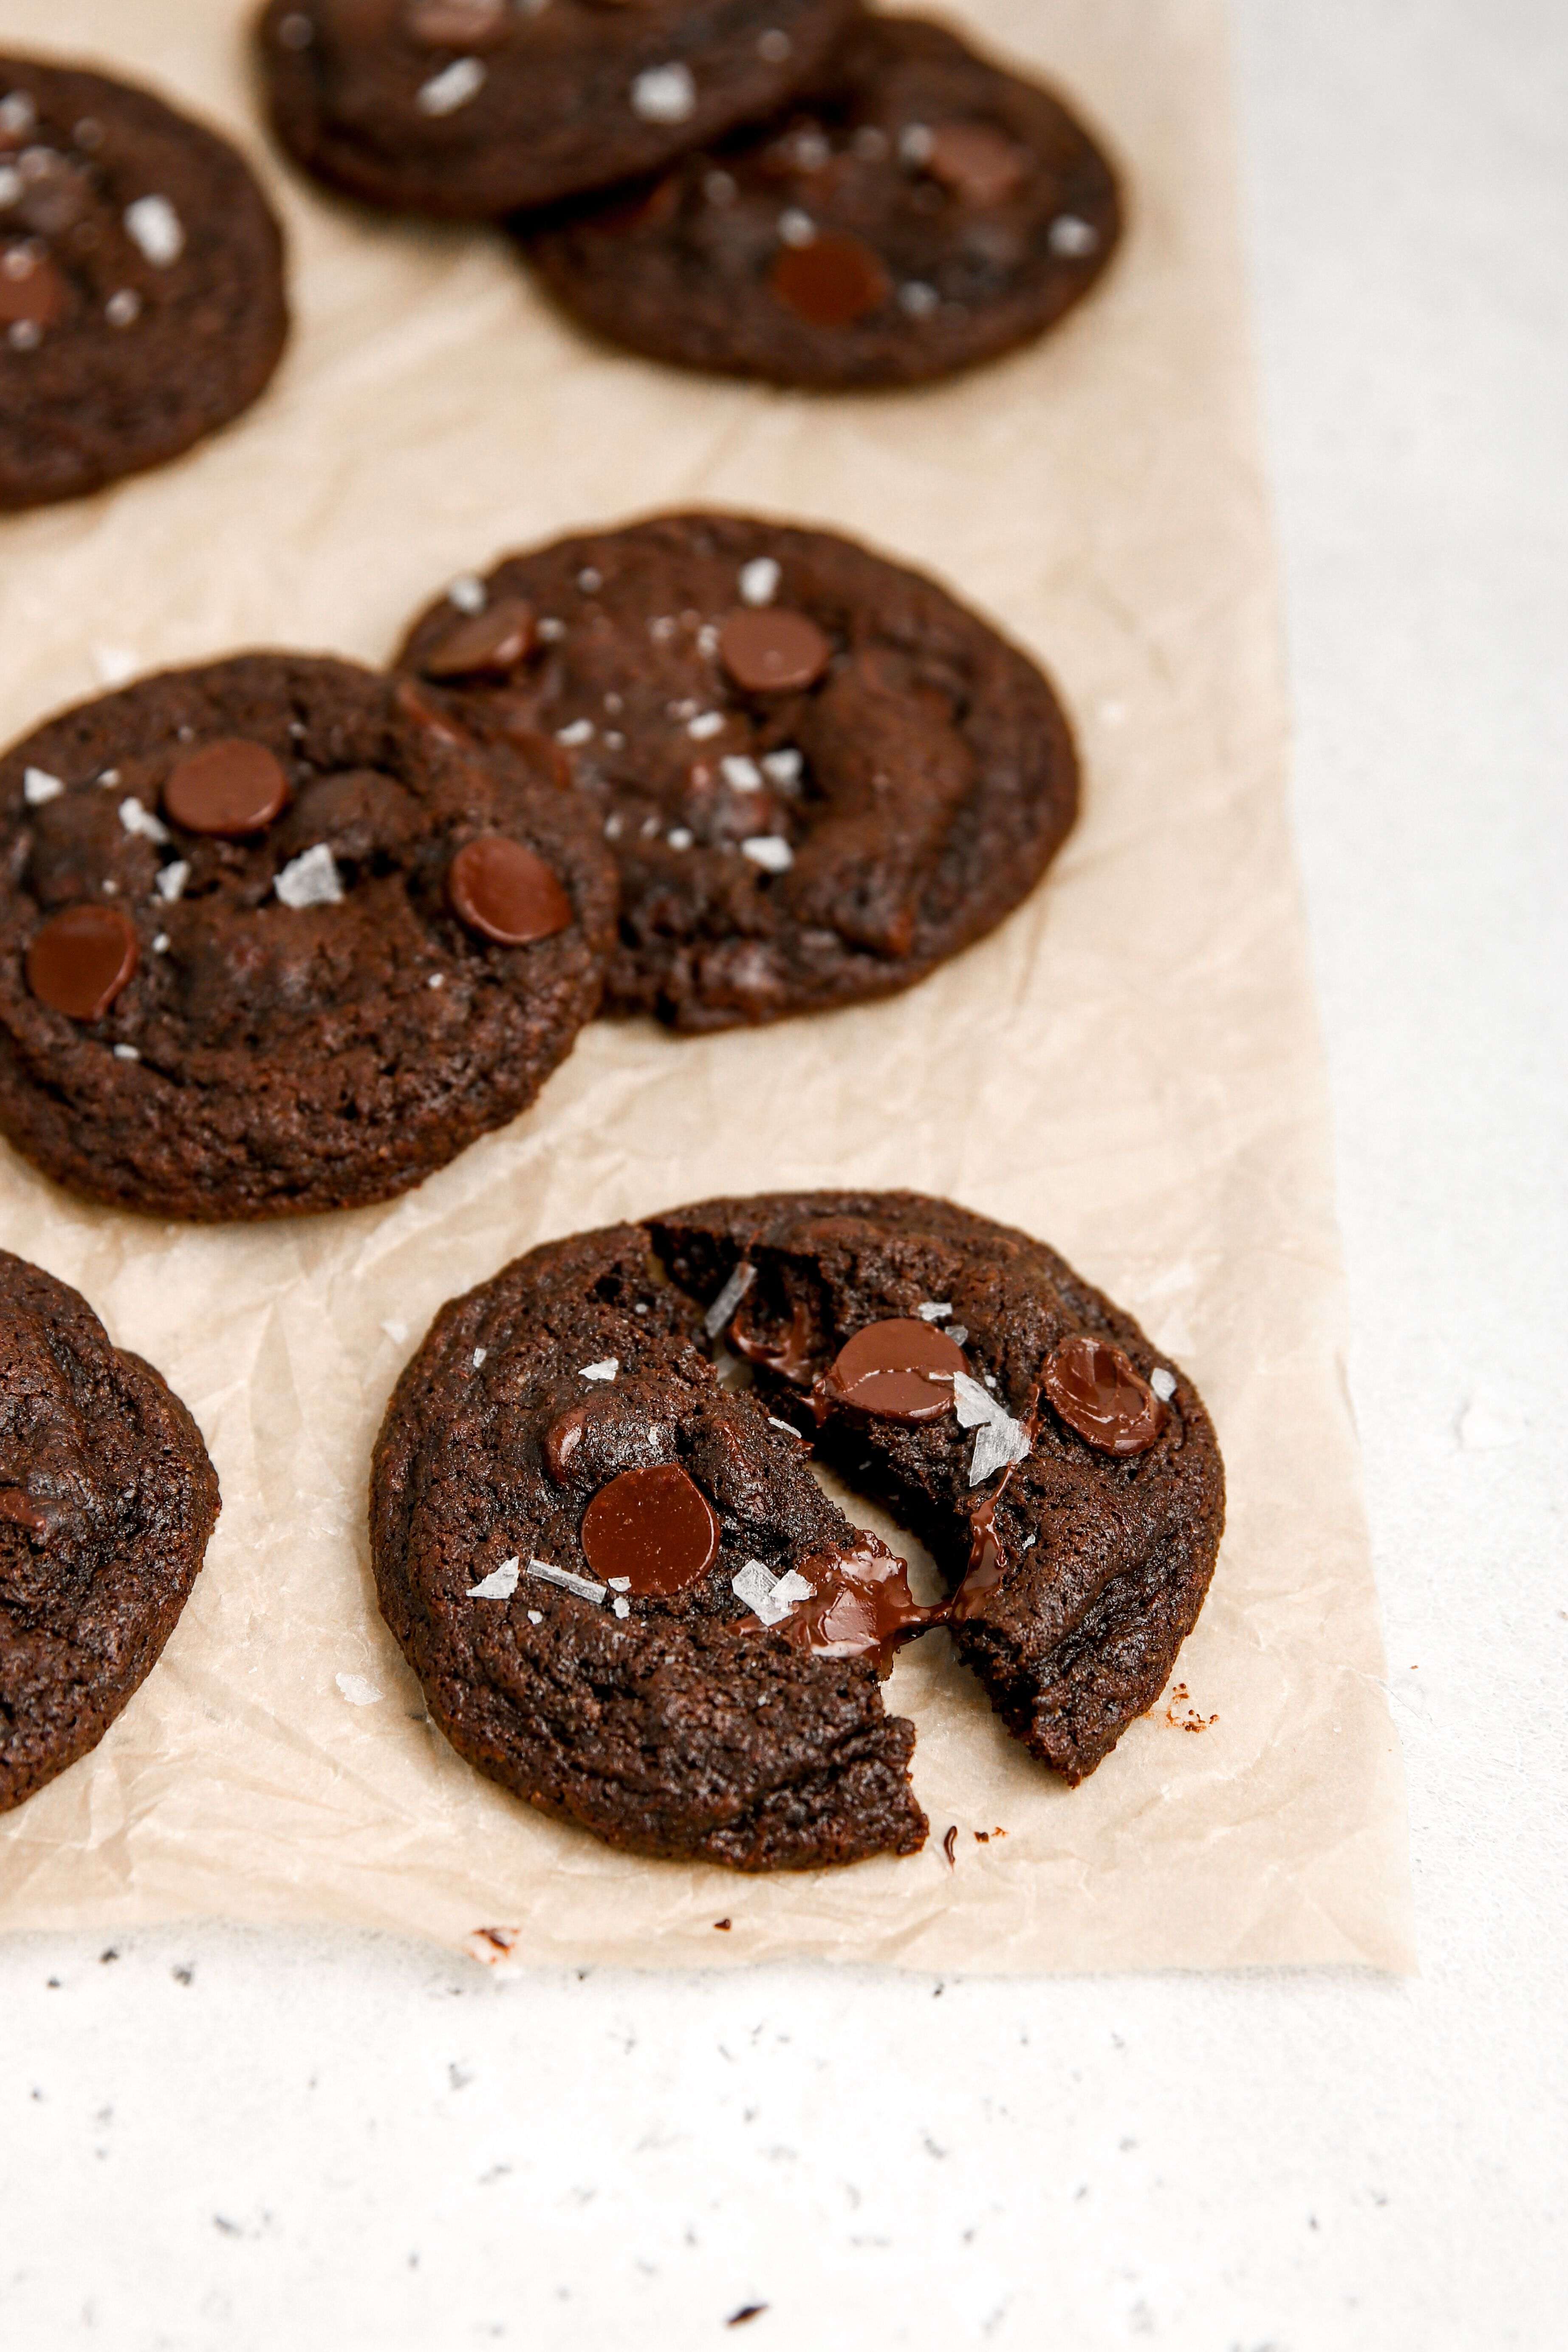 A baking sheet with chocolate chip chocolate cookies on it.